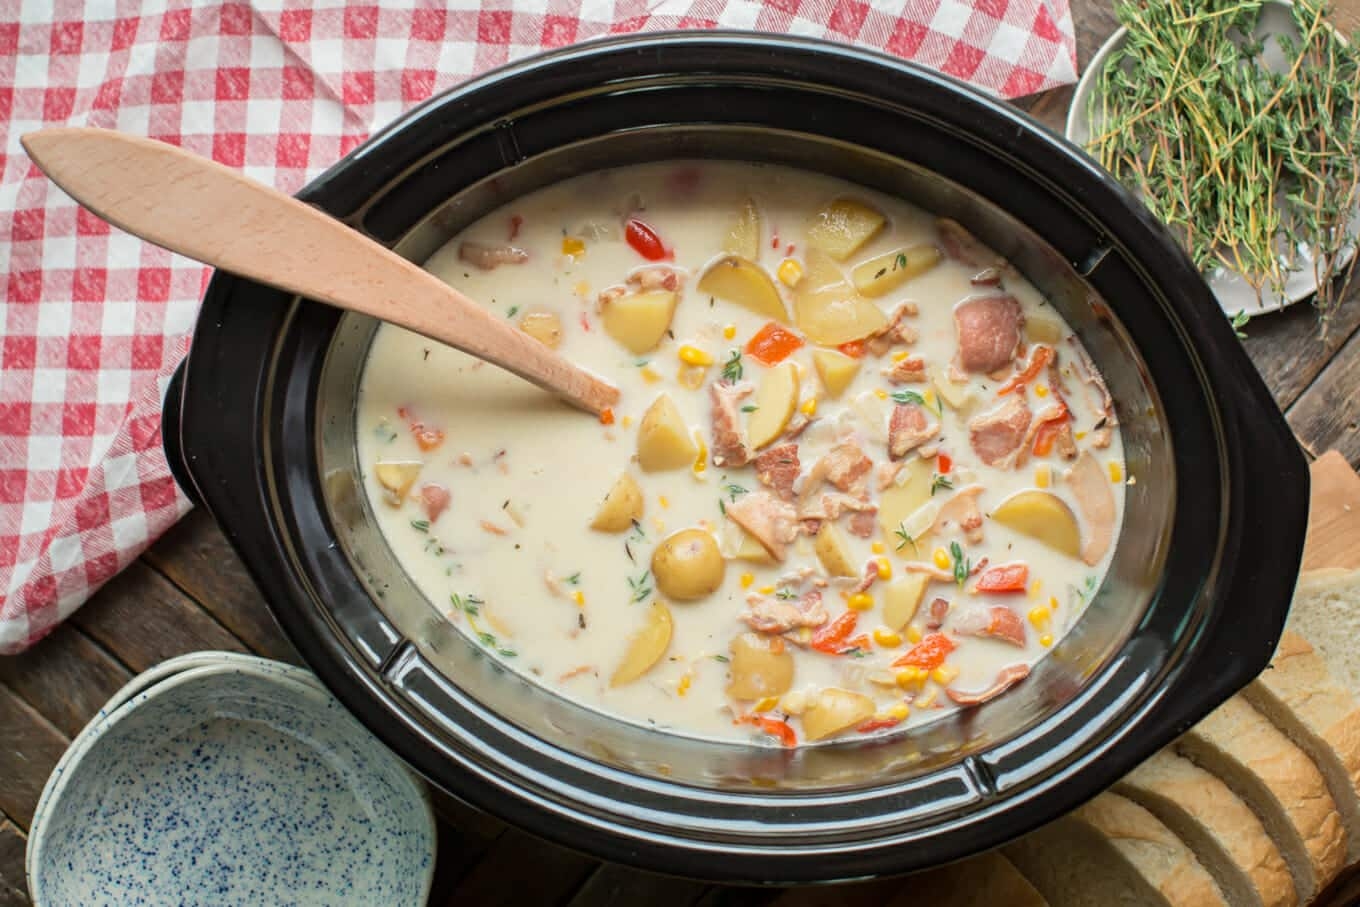 corn chowder in a slow cooker with wooden spoon in it.